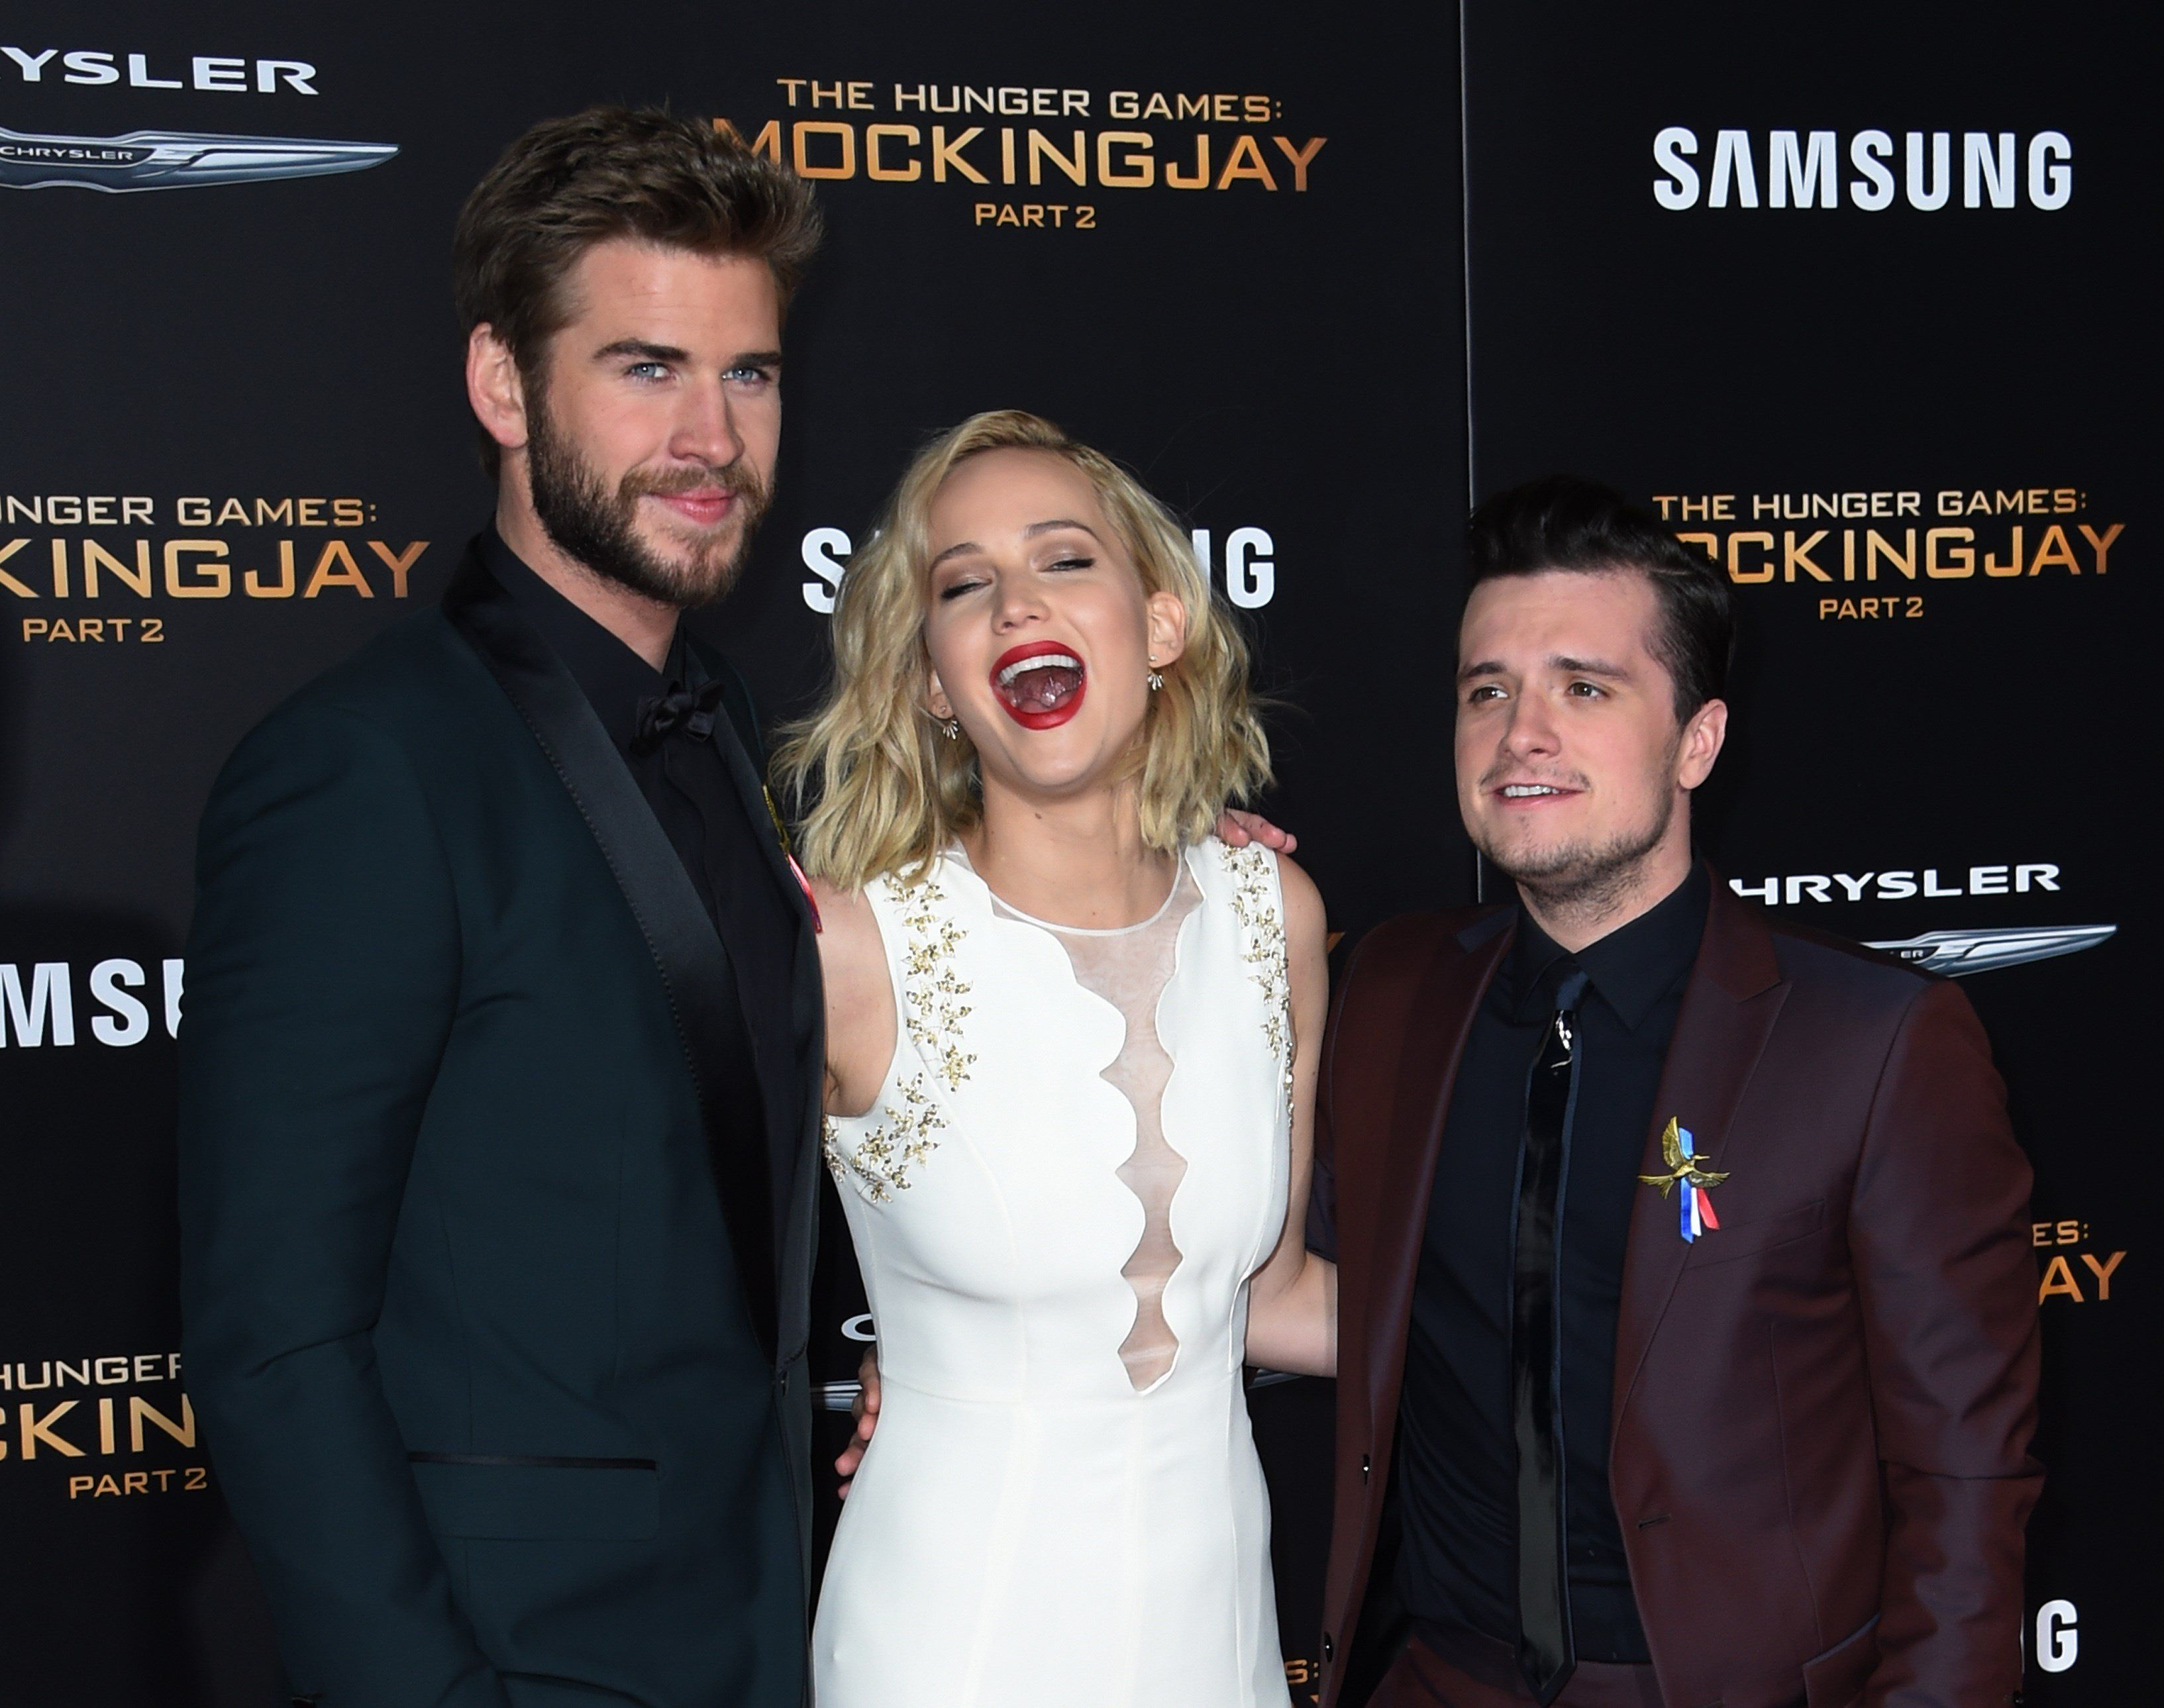 Actors (L-R) Liam Hemsworth, Jennifer Lawrence and Josh Hutcherson arrive for the premiere of Lionsgate's 'The Hunger Games: Mockingjay - Part 2' at Microsoft Theater in Los Angeles, California on November 16, 2015.                AFP PHOTO/MARK RALSTON        (Photo credit should read MARK RALSTON/AFP/Getty Images)